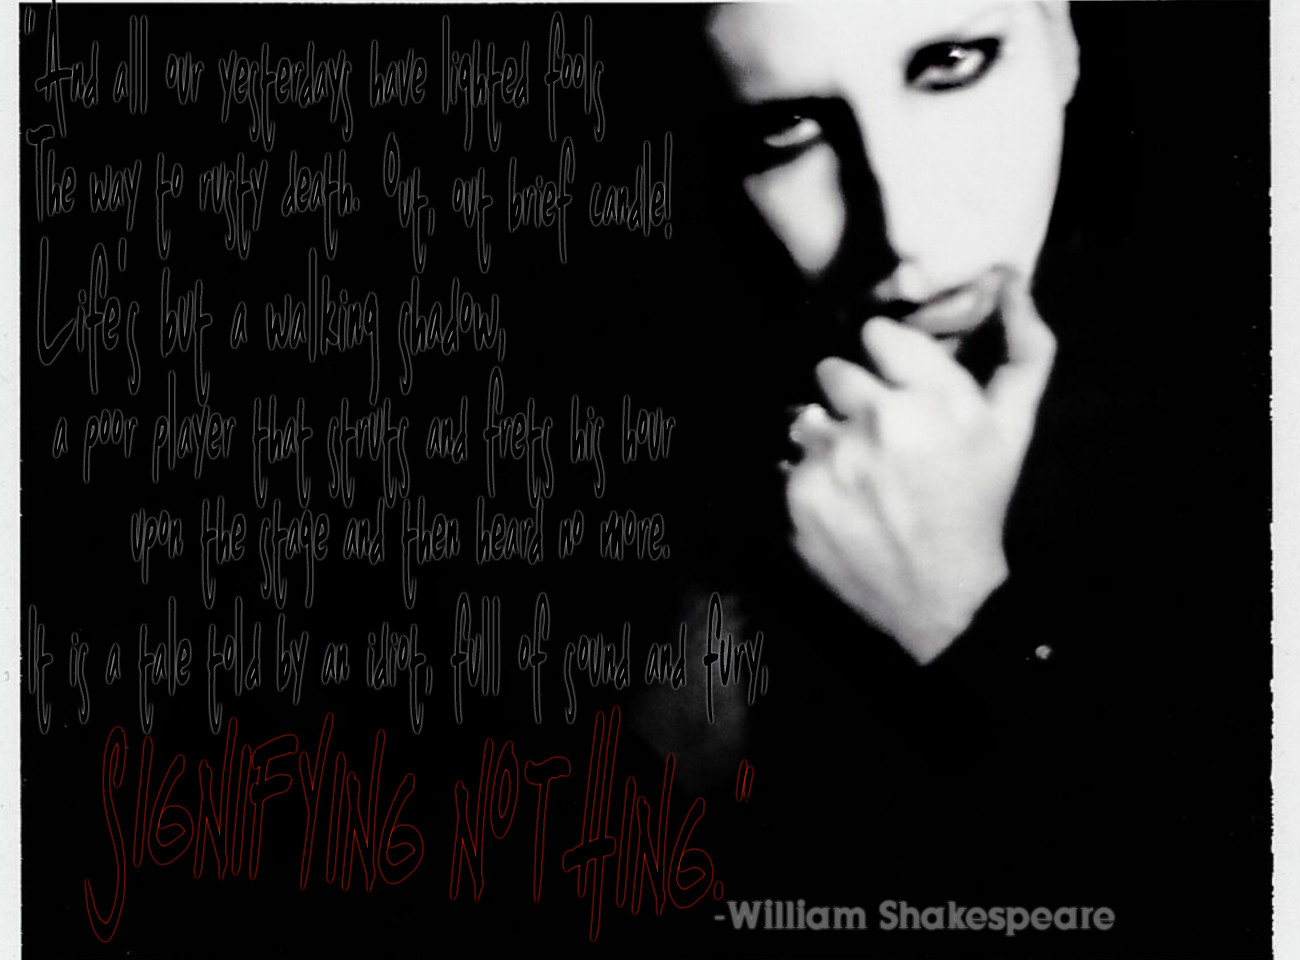 Marilyn manson no reason